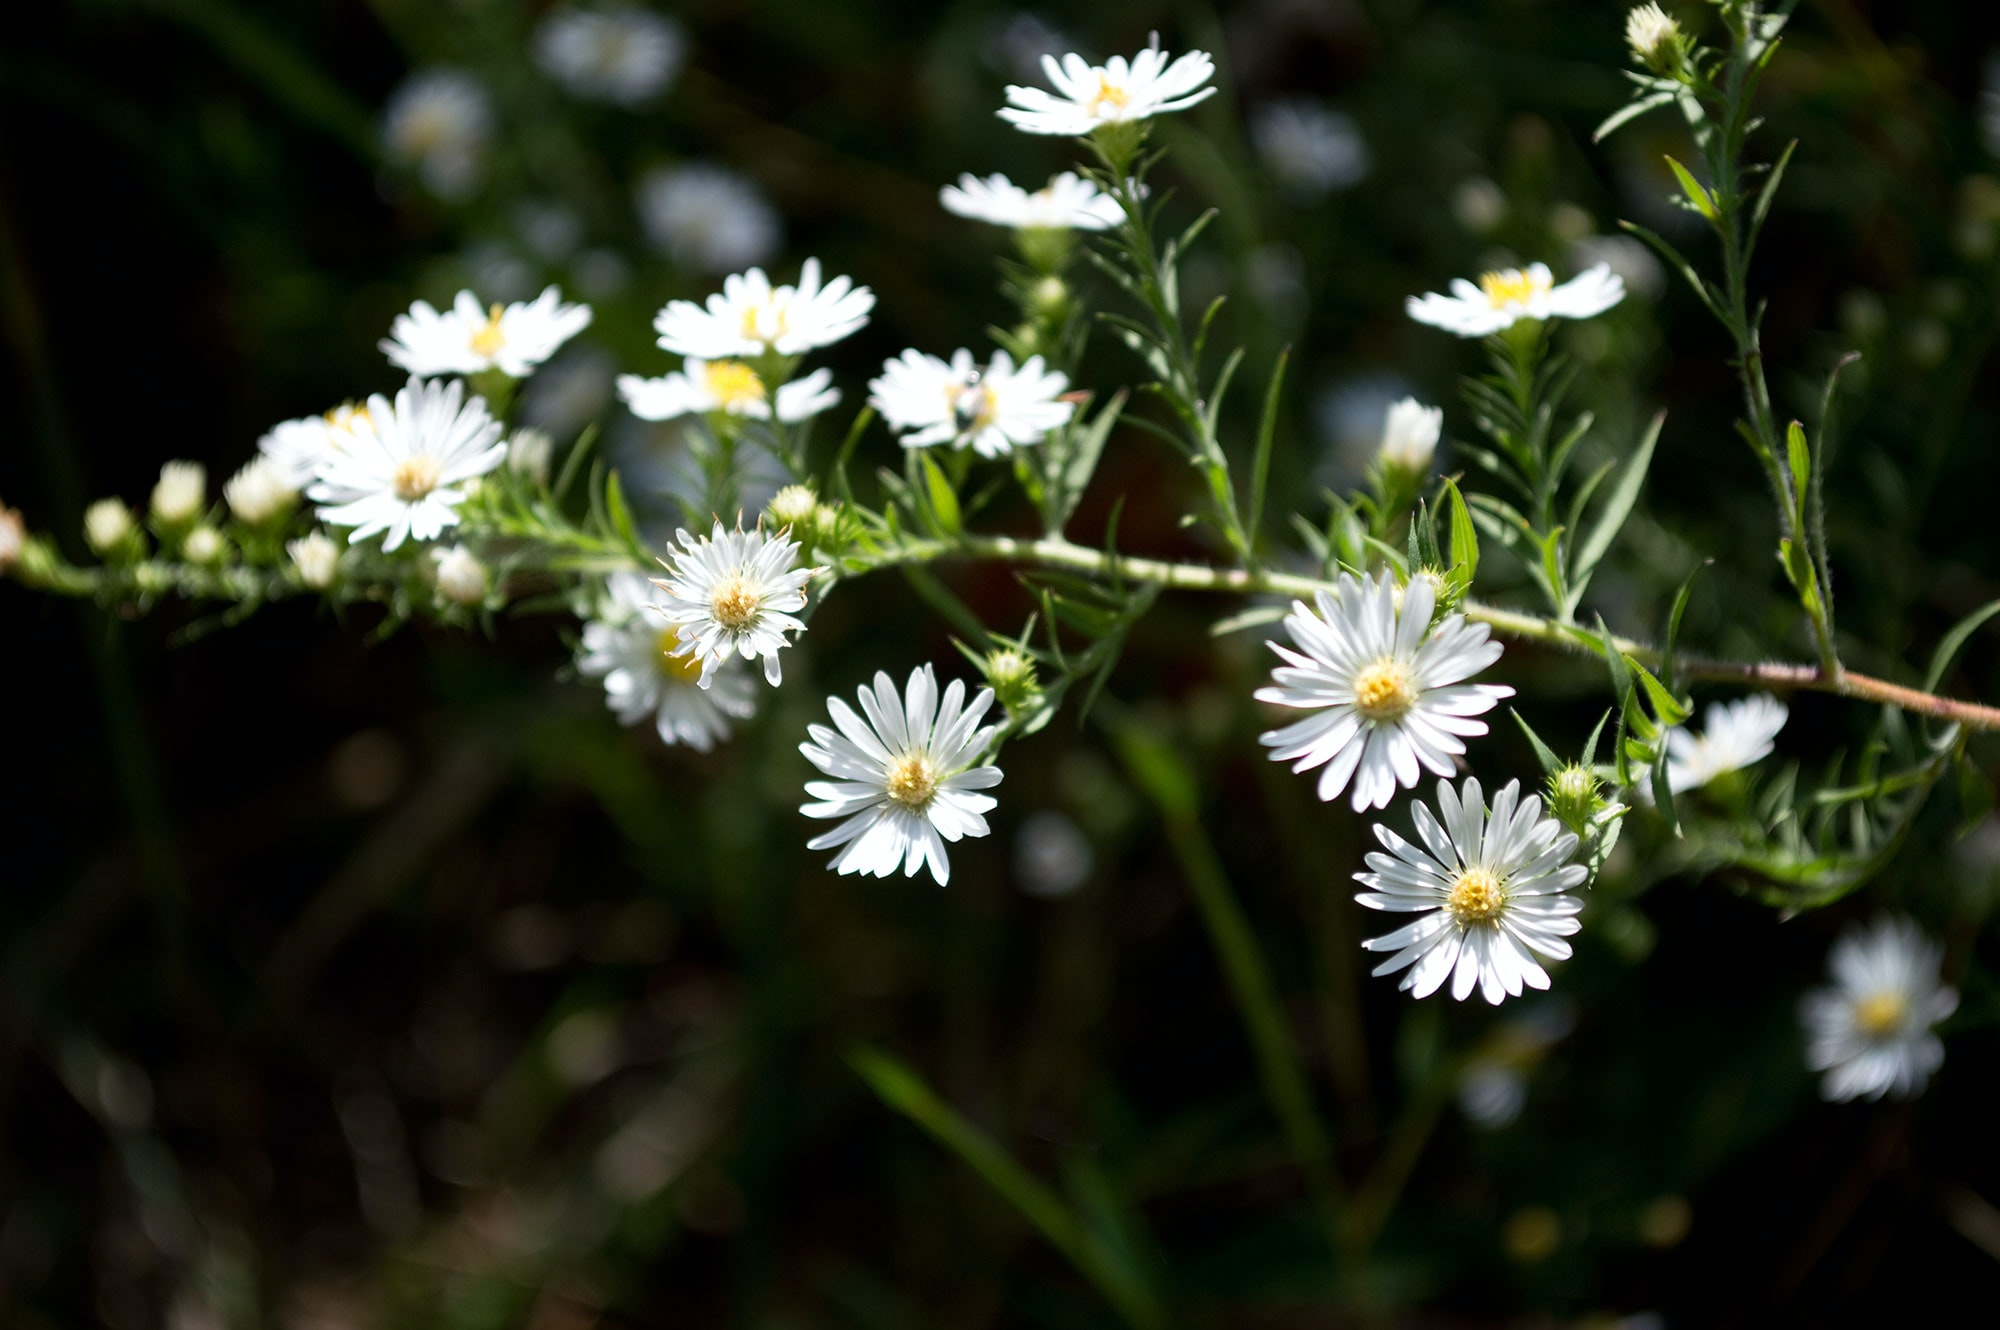 Daisy Chains found-poetry stories